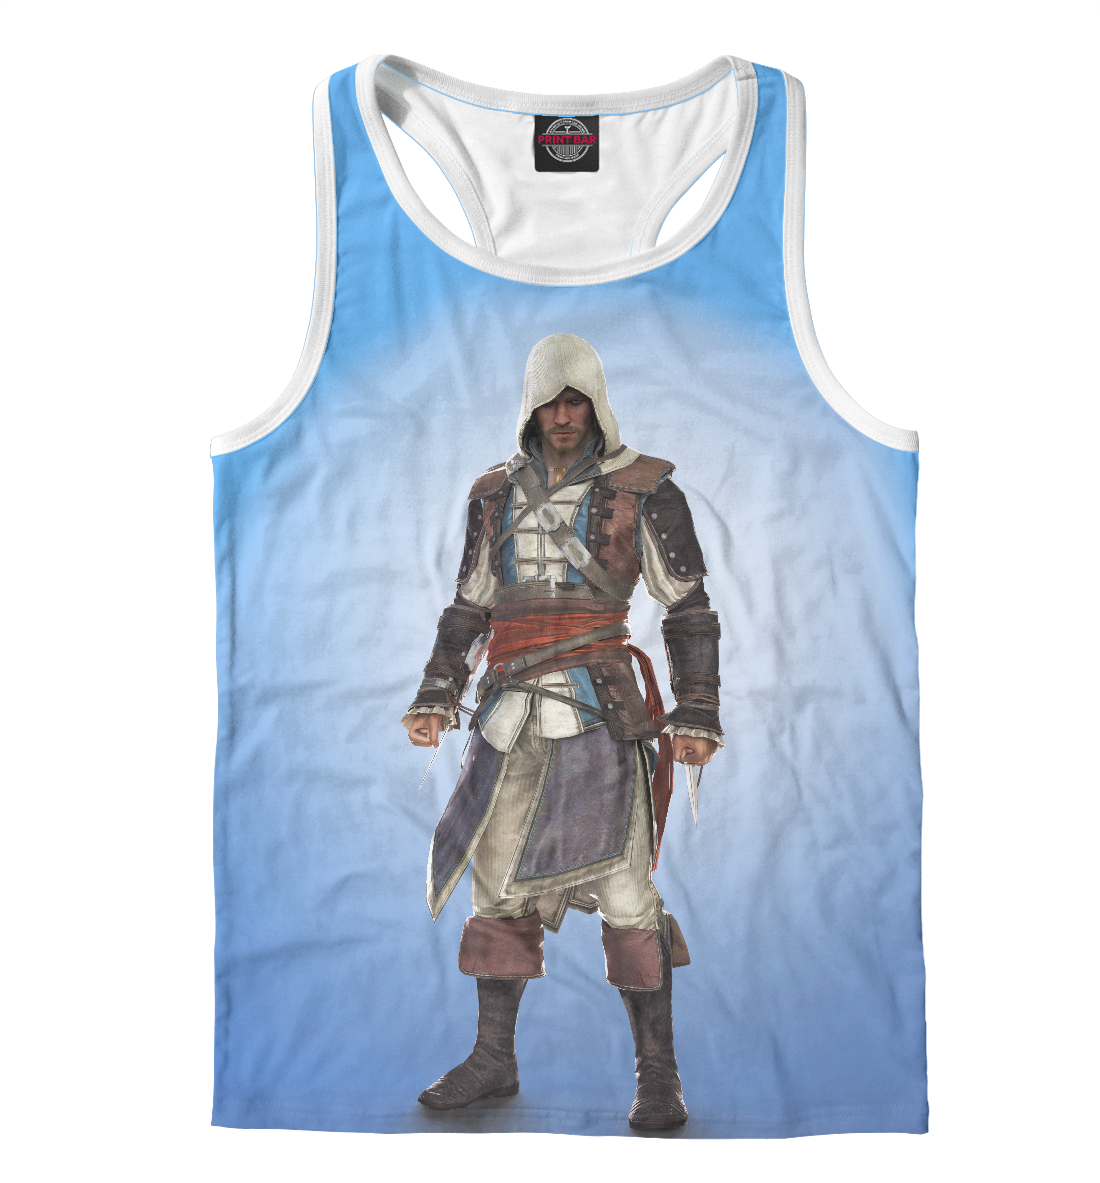 Edward Kenway (Assassins Creed)